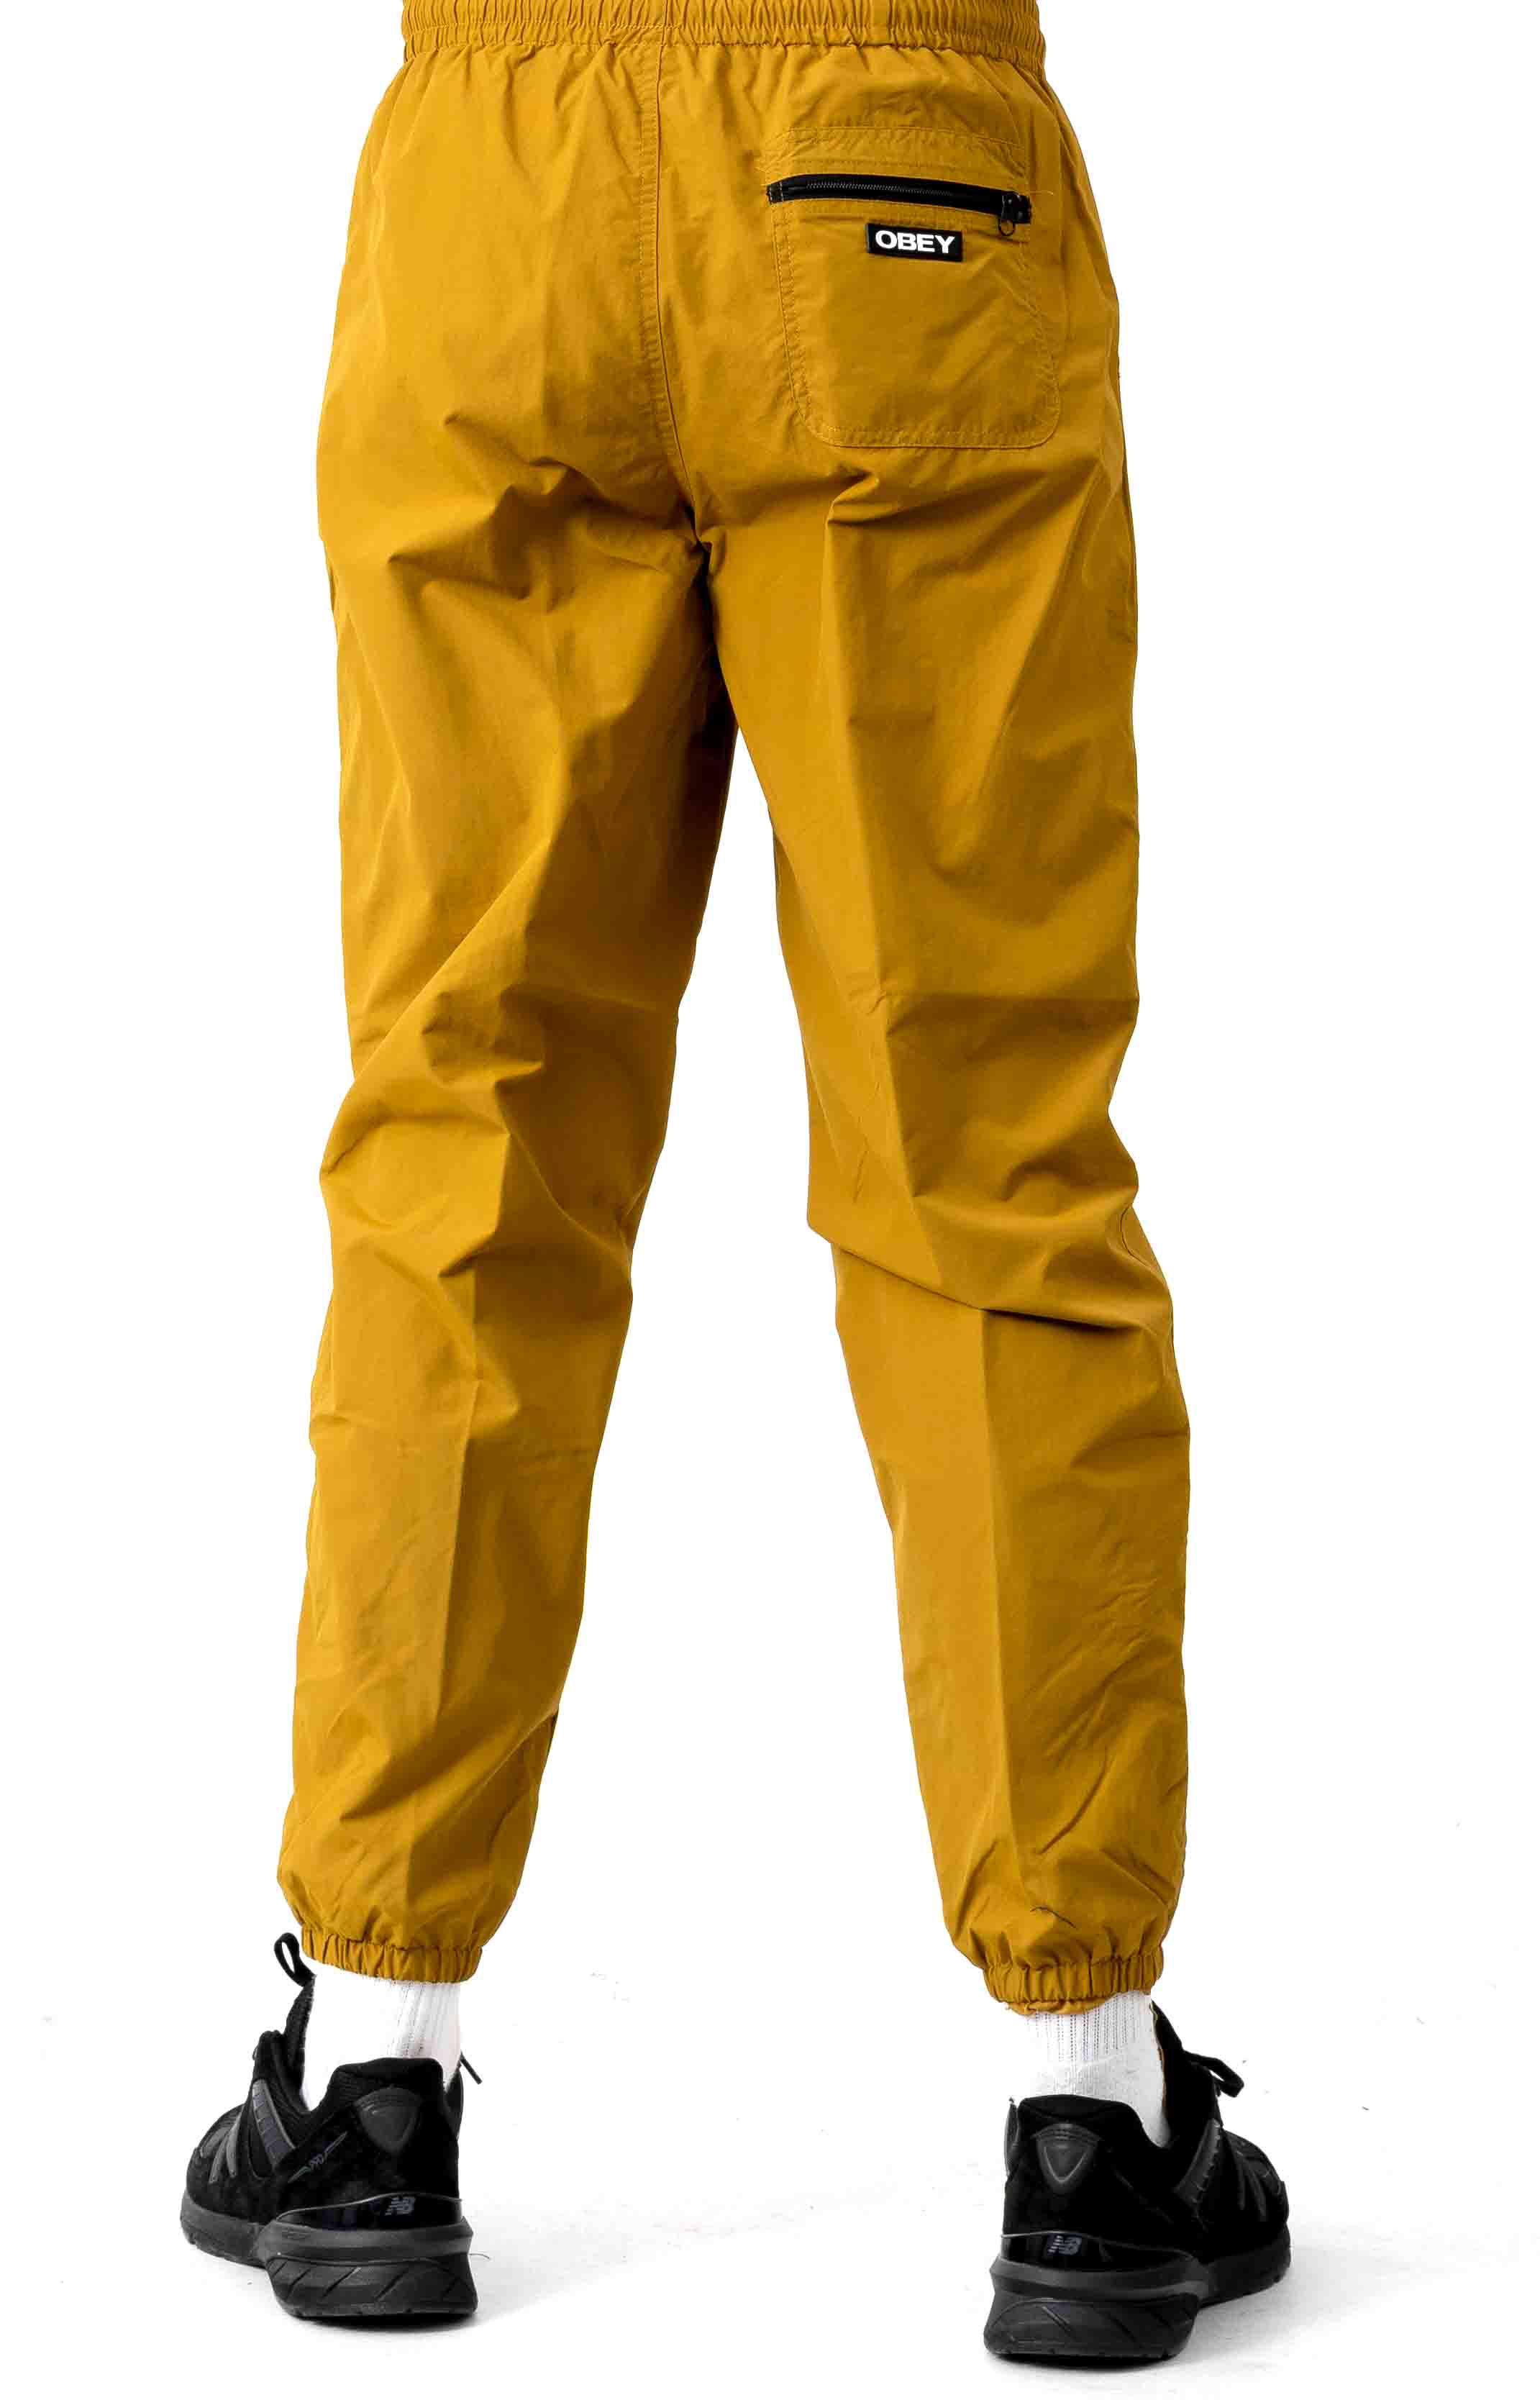 Easy Outdoor Pant - Golden Palm 3